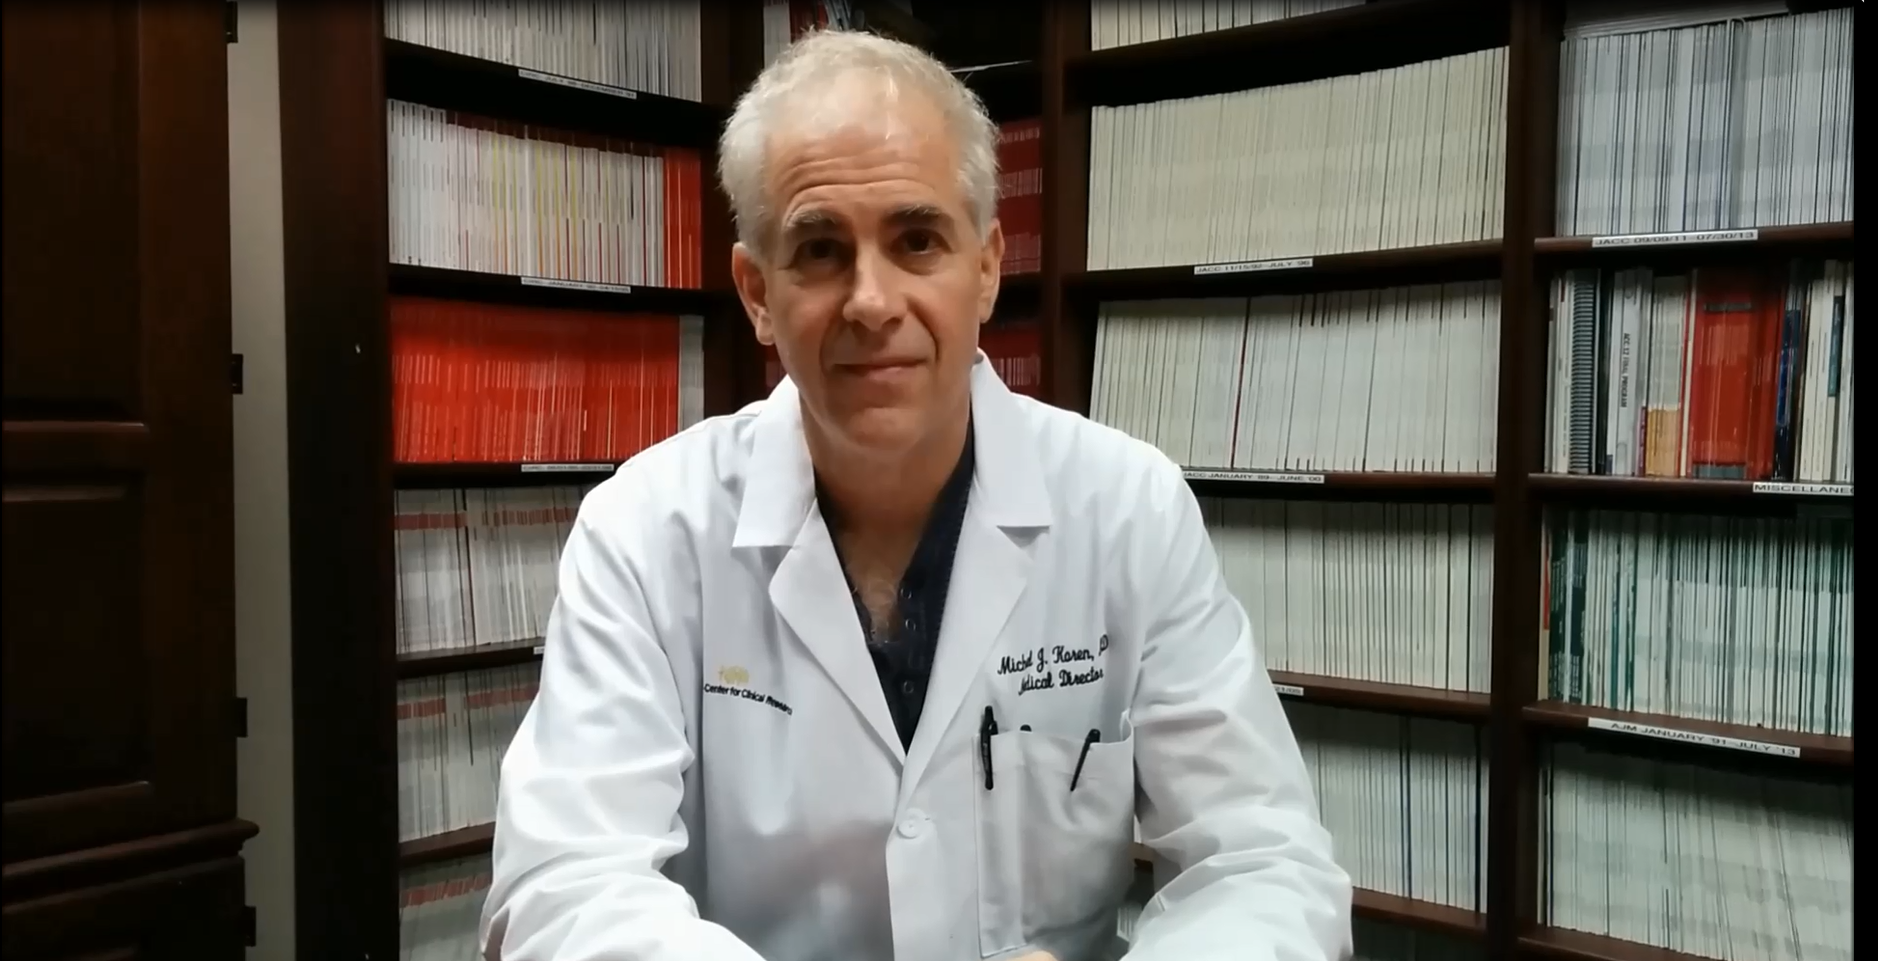 Michael J. Koren, MD